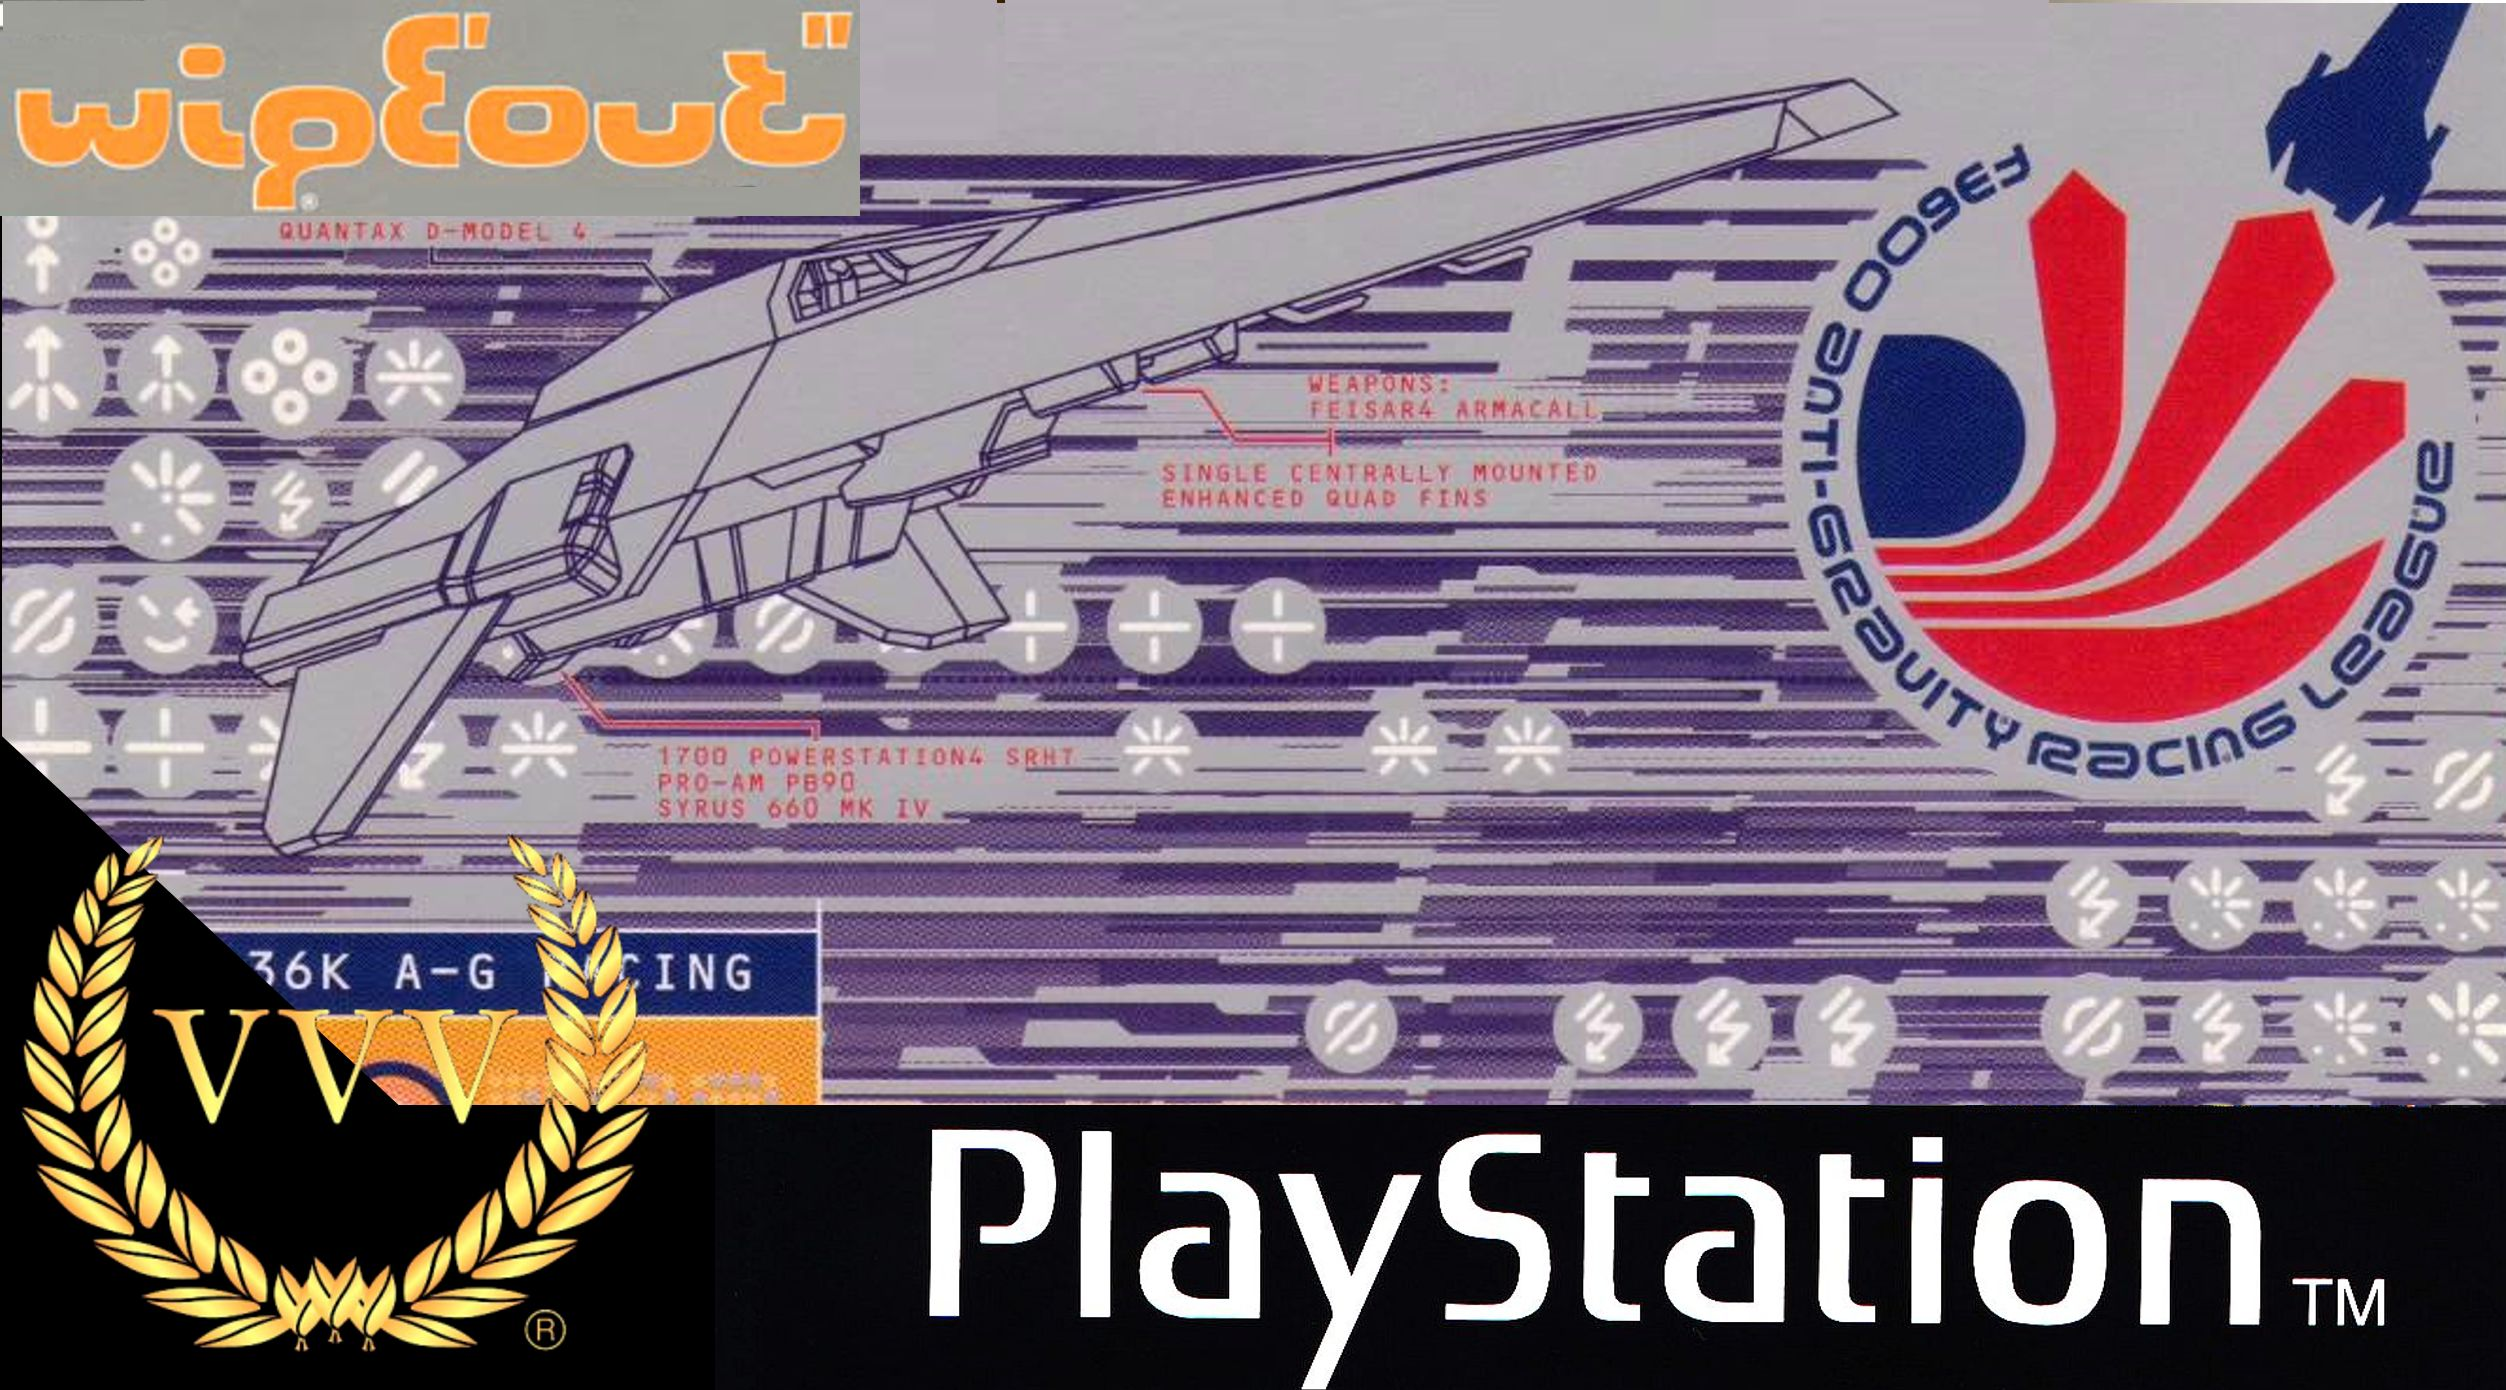 We revisit the PlayStation 1 defining classic racer Wipeout